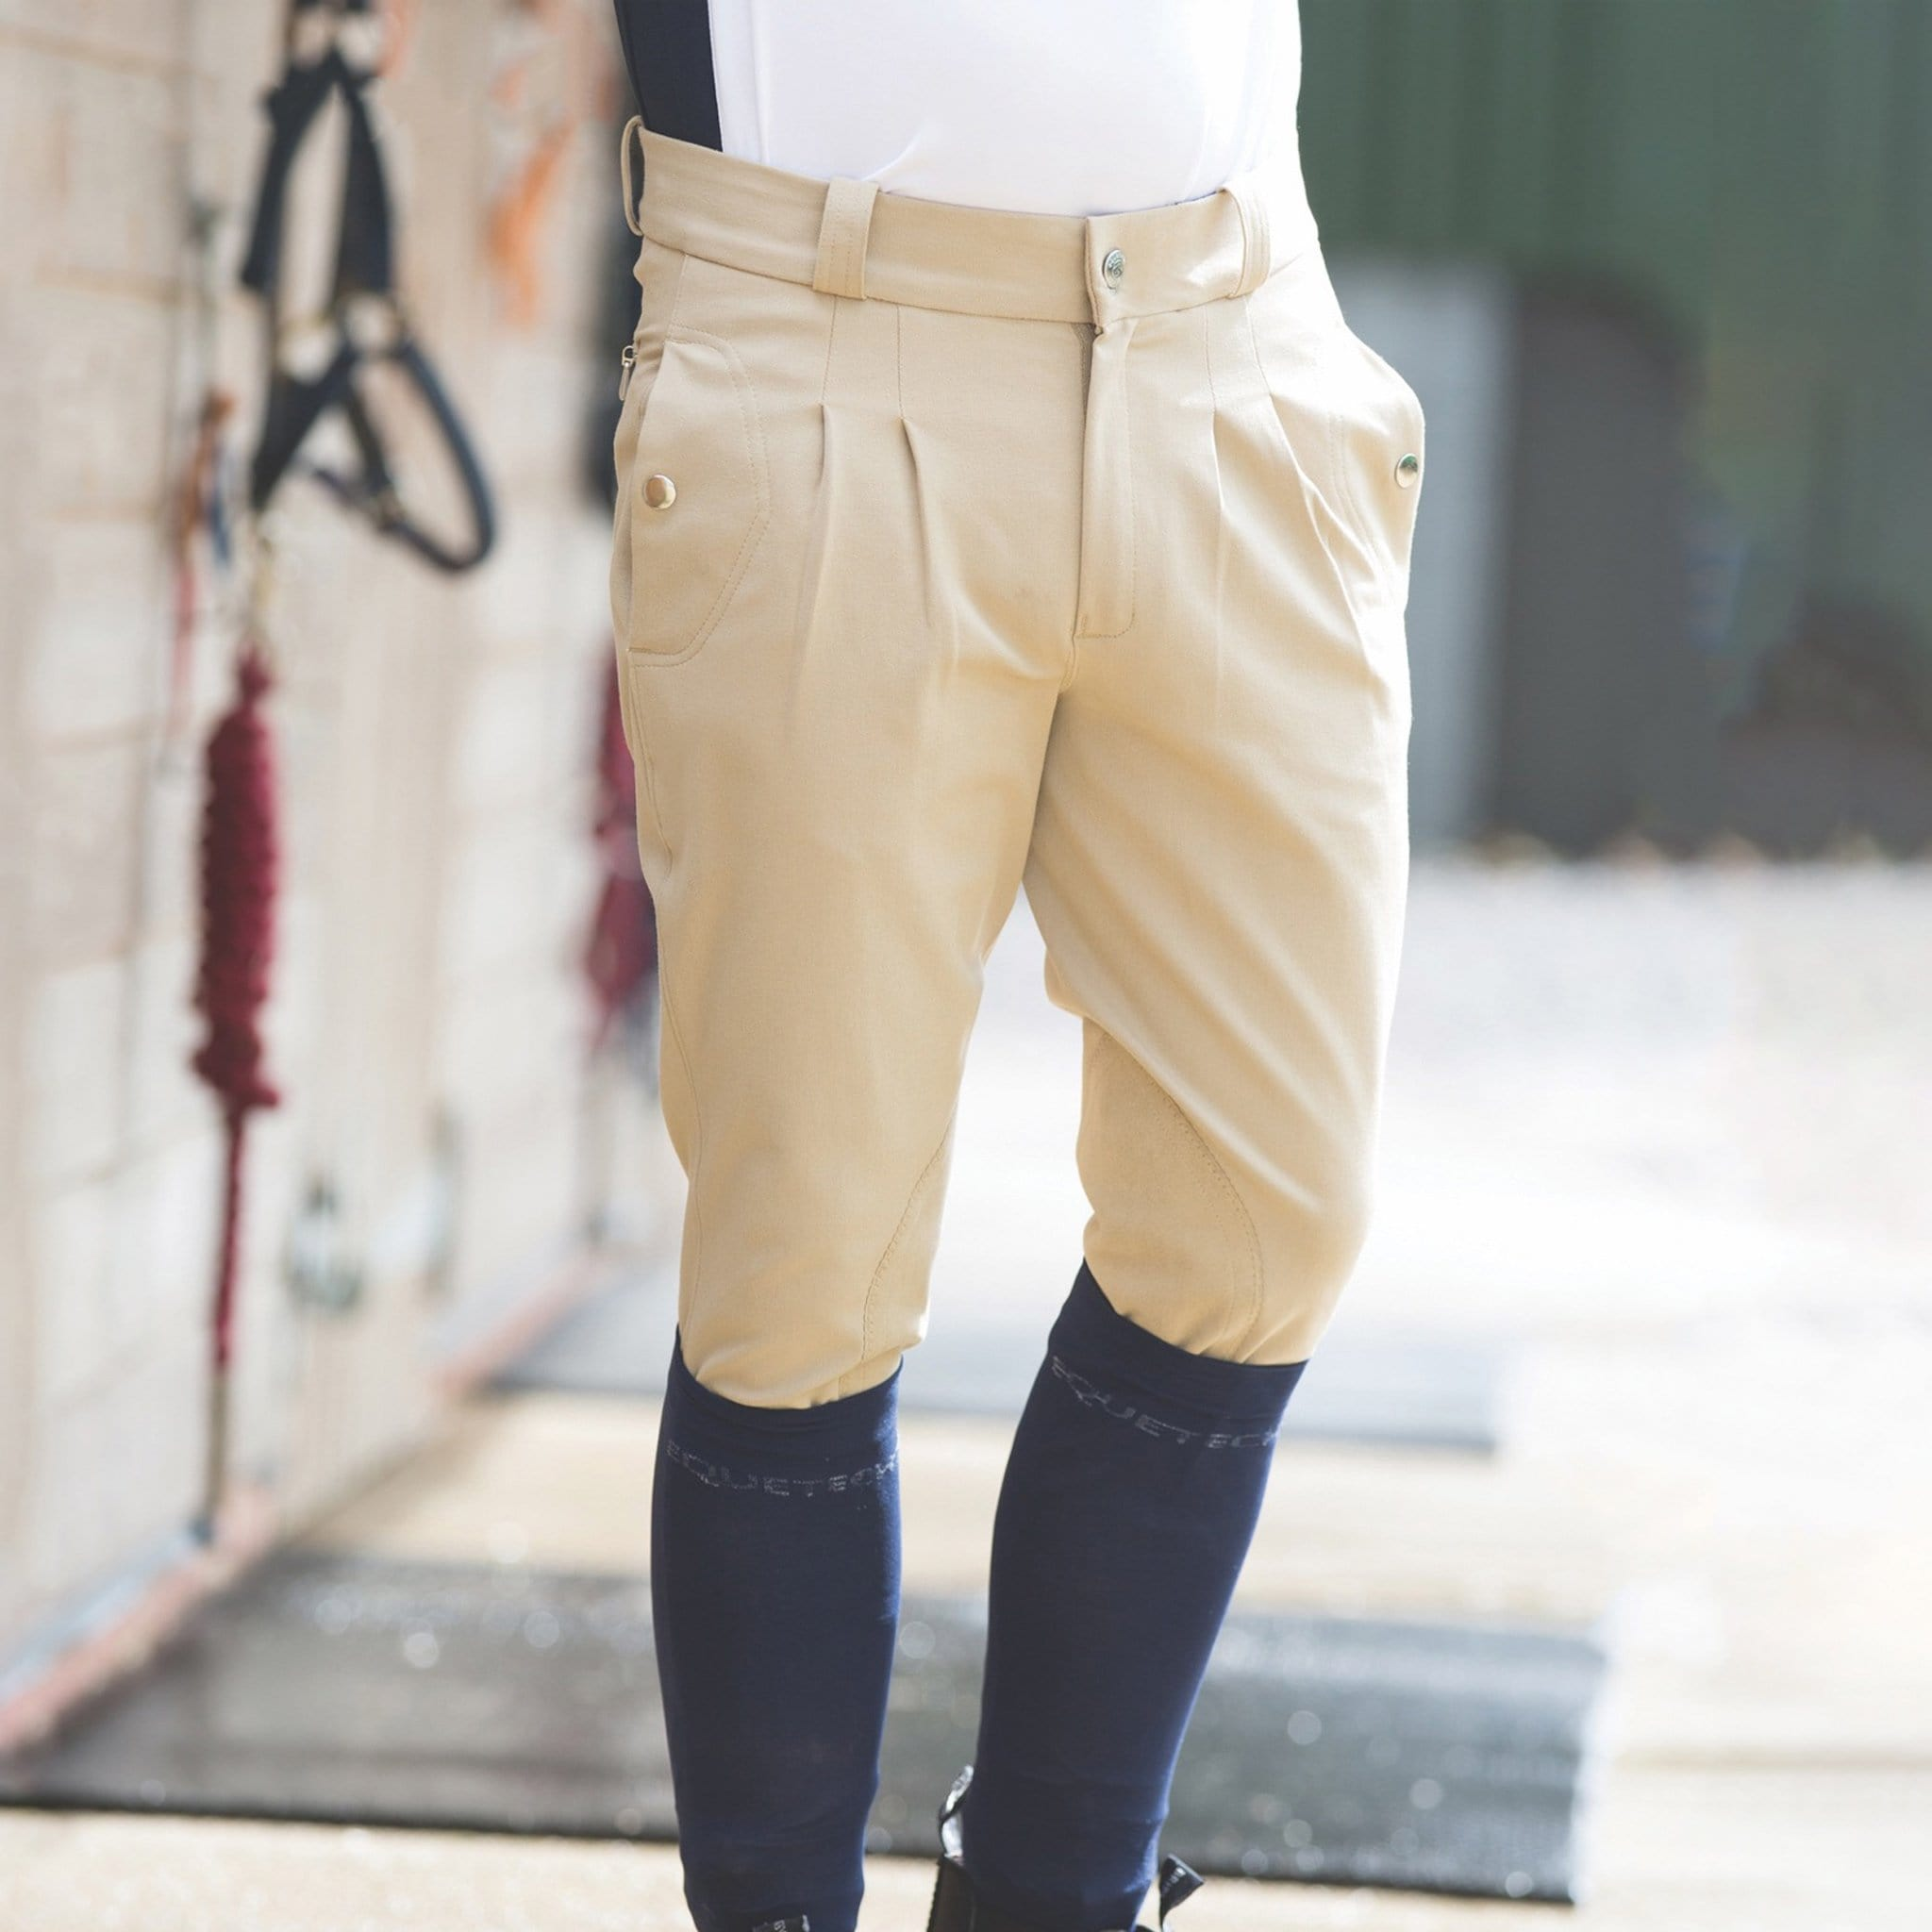 MKB Equetech Men's Kingham Silicone Knee Patch Breeches Beige on model